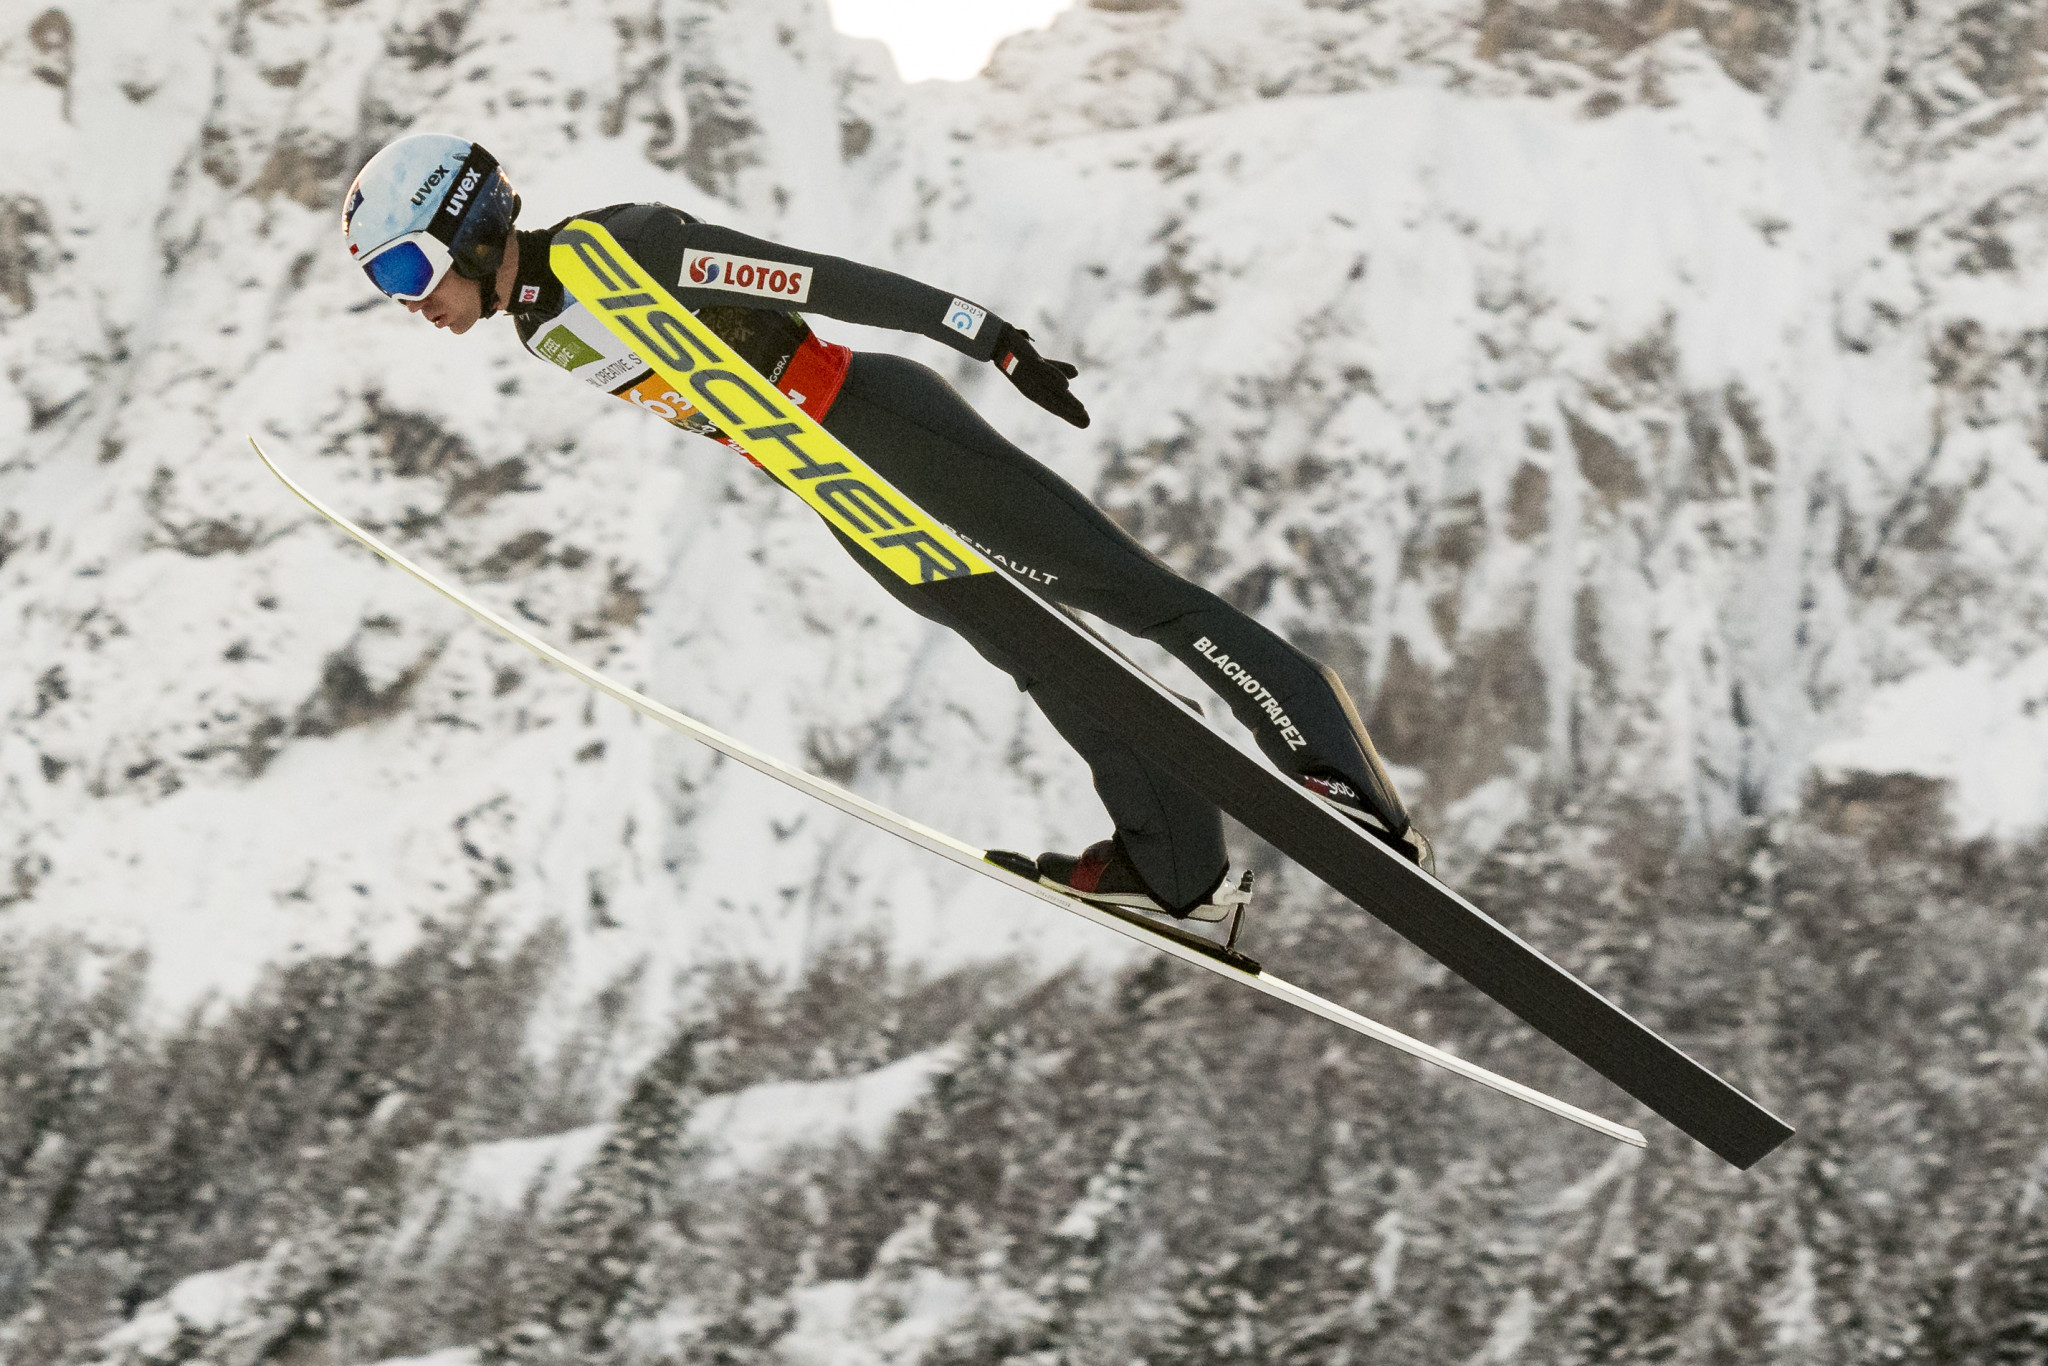 Polish ski jumpers receive late approval to compete in Oberstdorf after second COVID-19 test